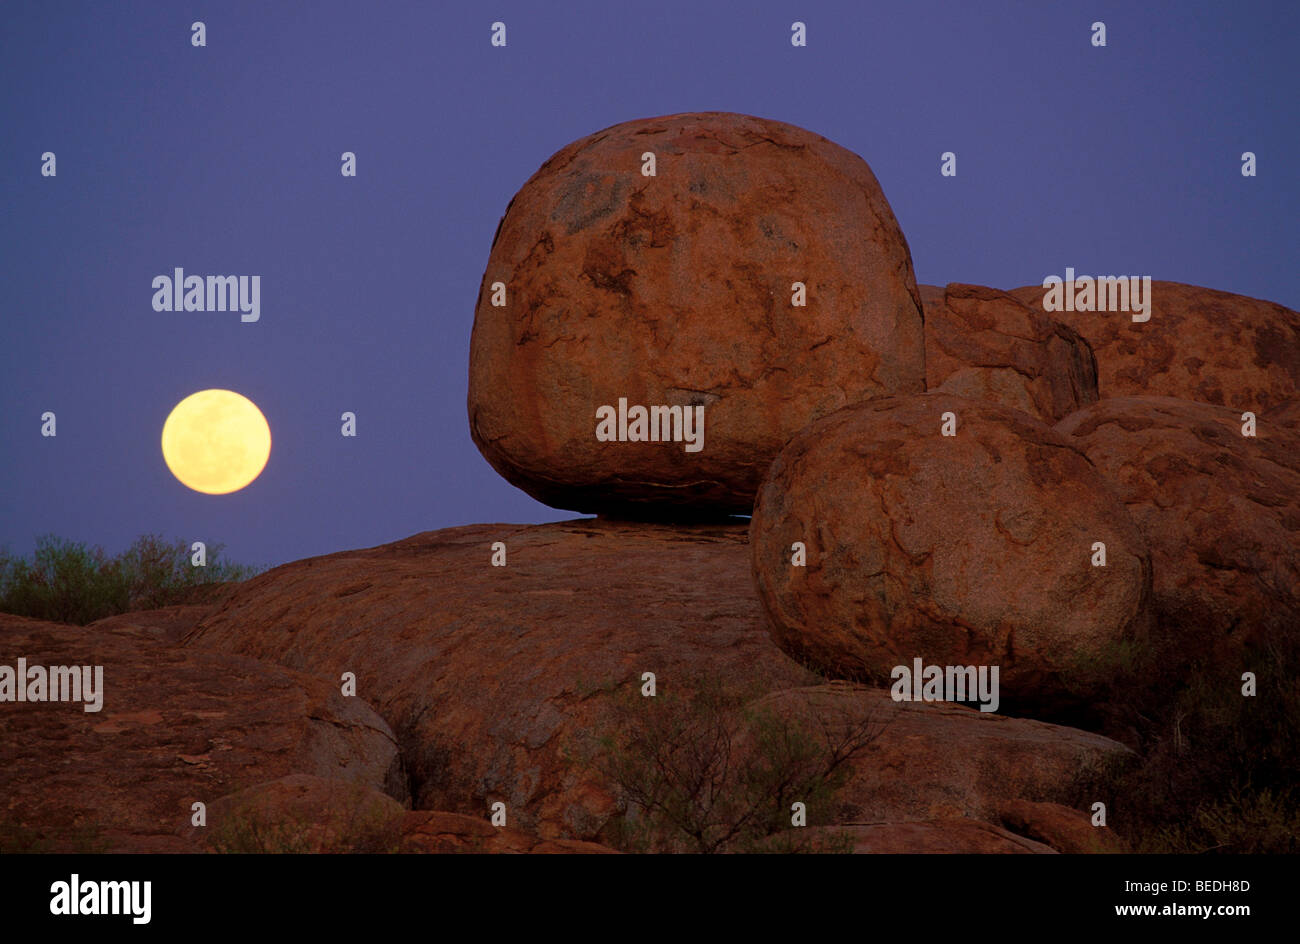 Full moon behind round boulders, Devils Marbles Conservation Reserve, Northern Territory, Australia Stock Photo